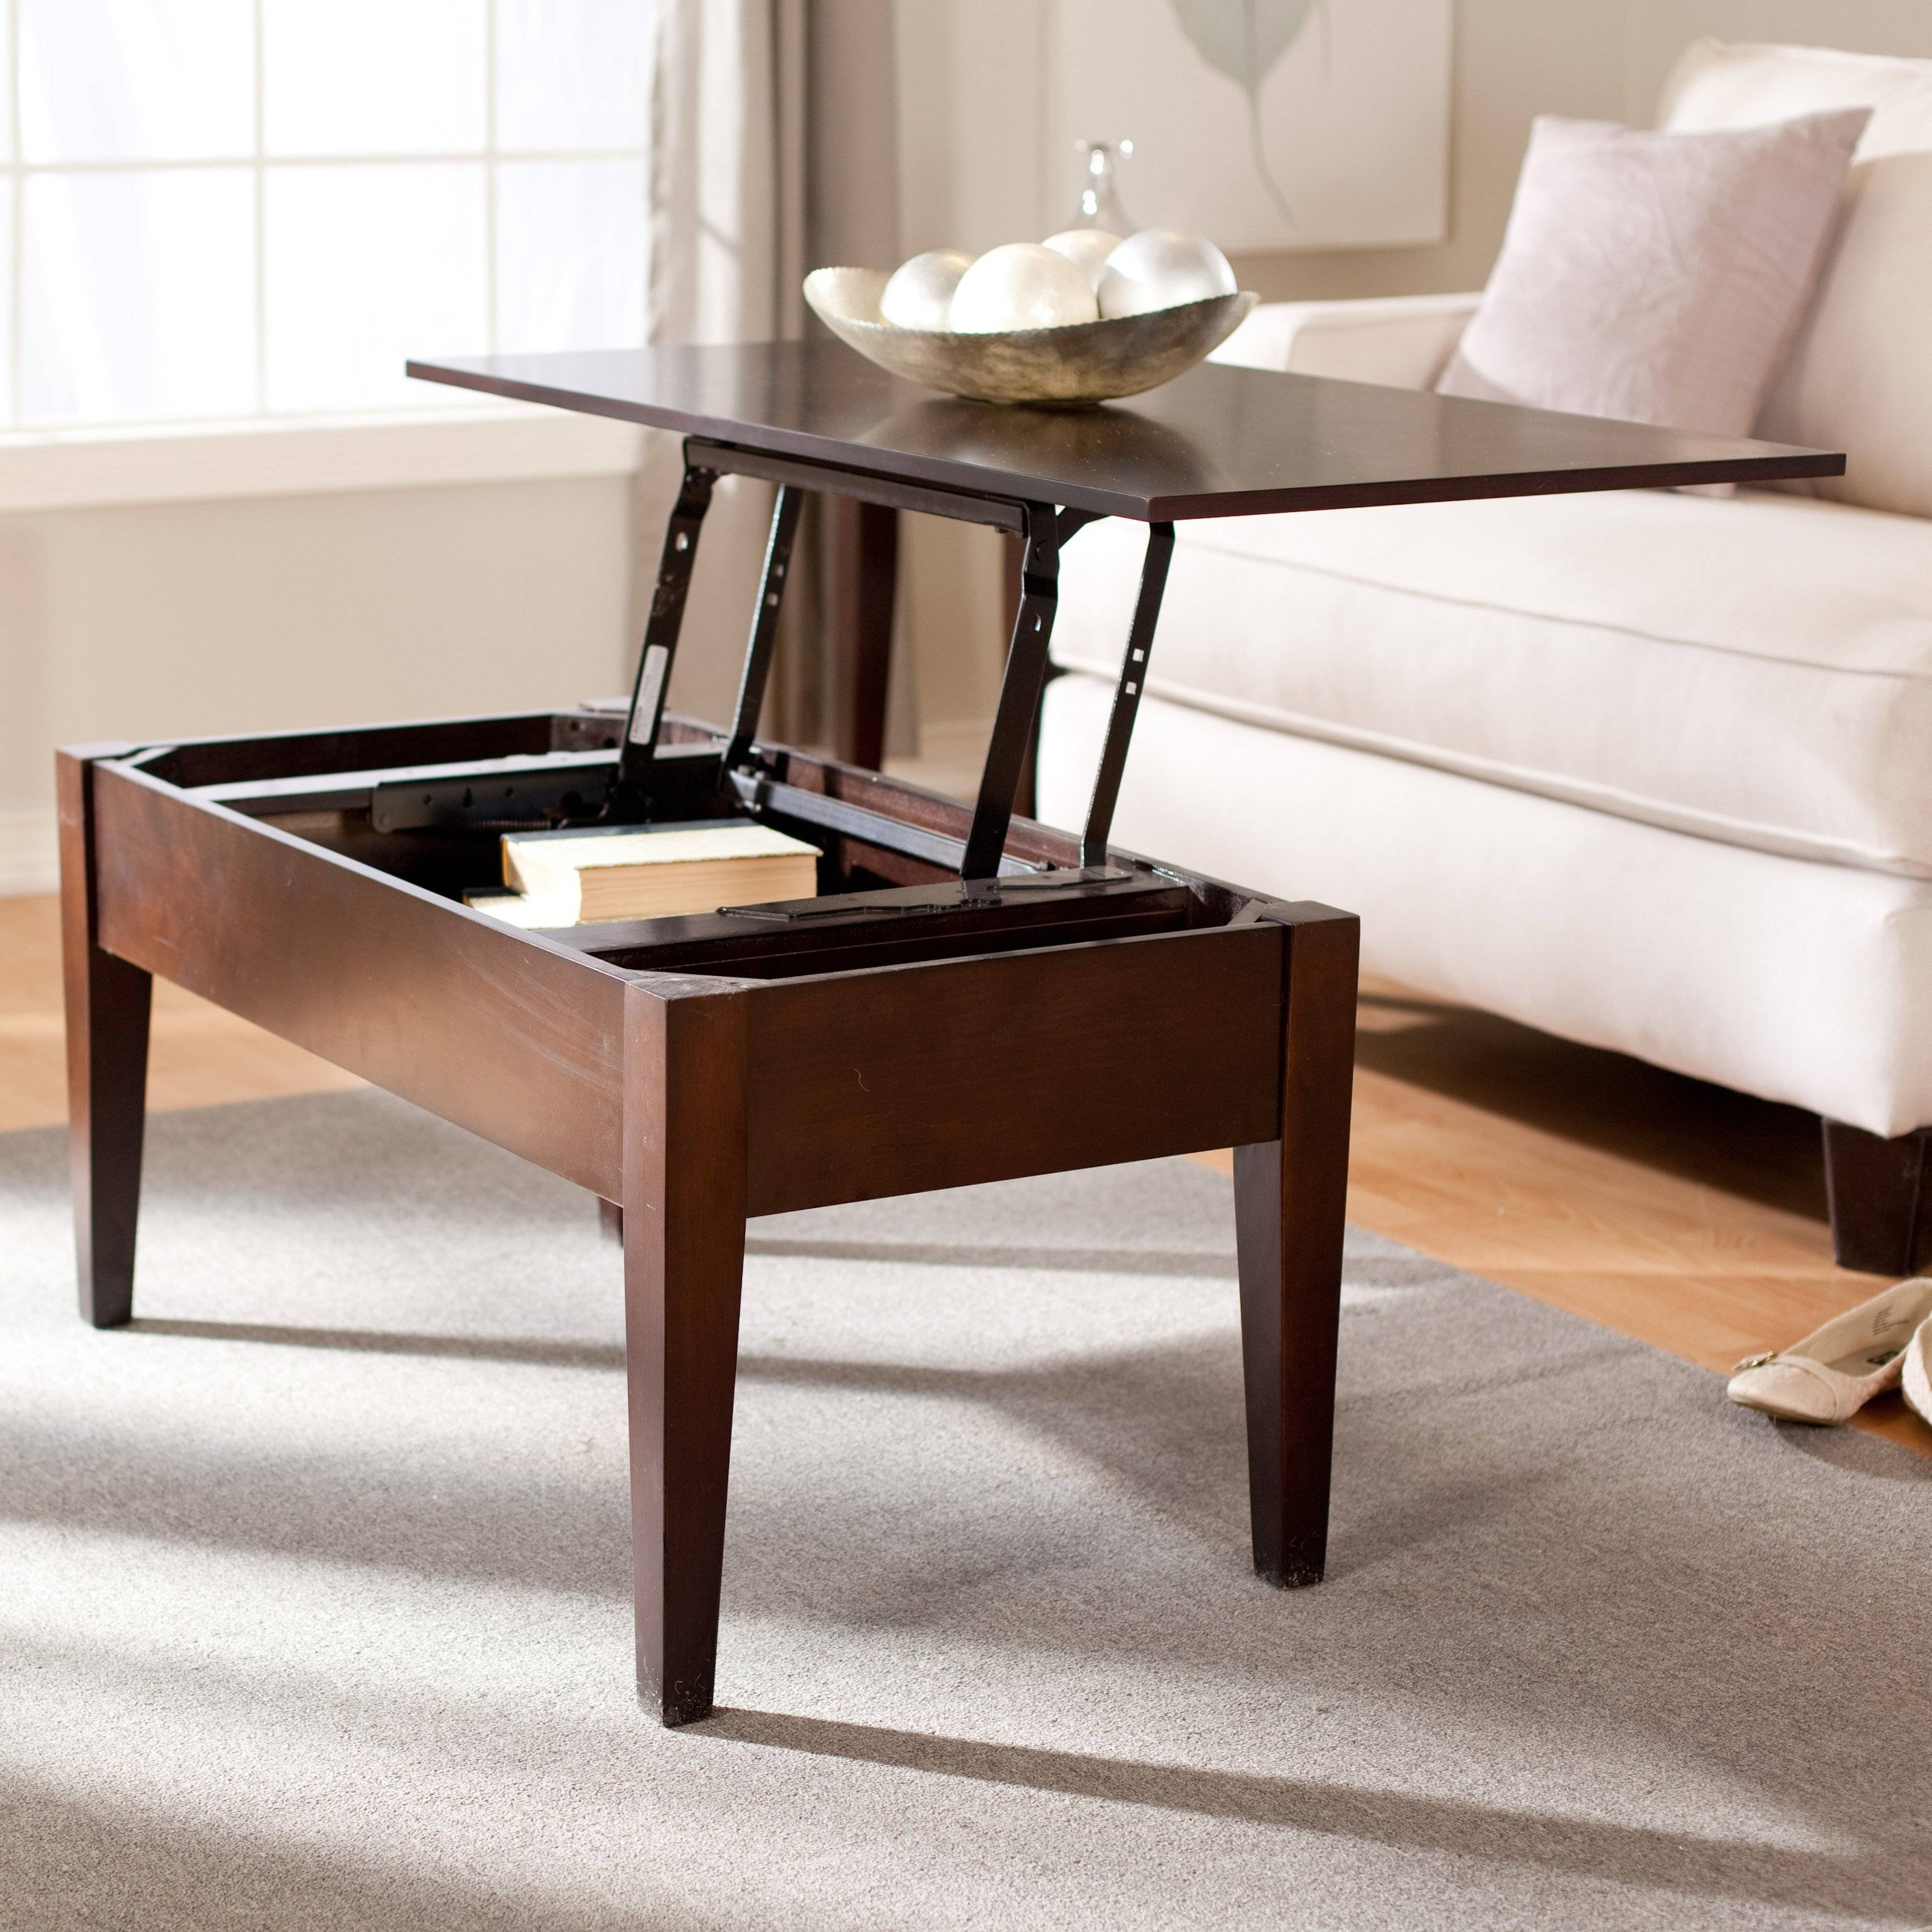 Turner Lift Top Coffee Table - Espresso | Hayneedle pertaining to Coffee Tables With Lifting Top (Image 26 of 30)